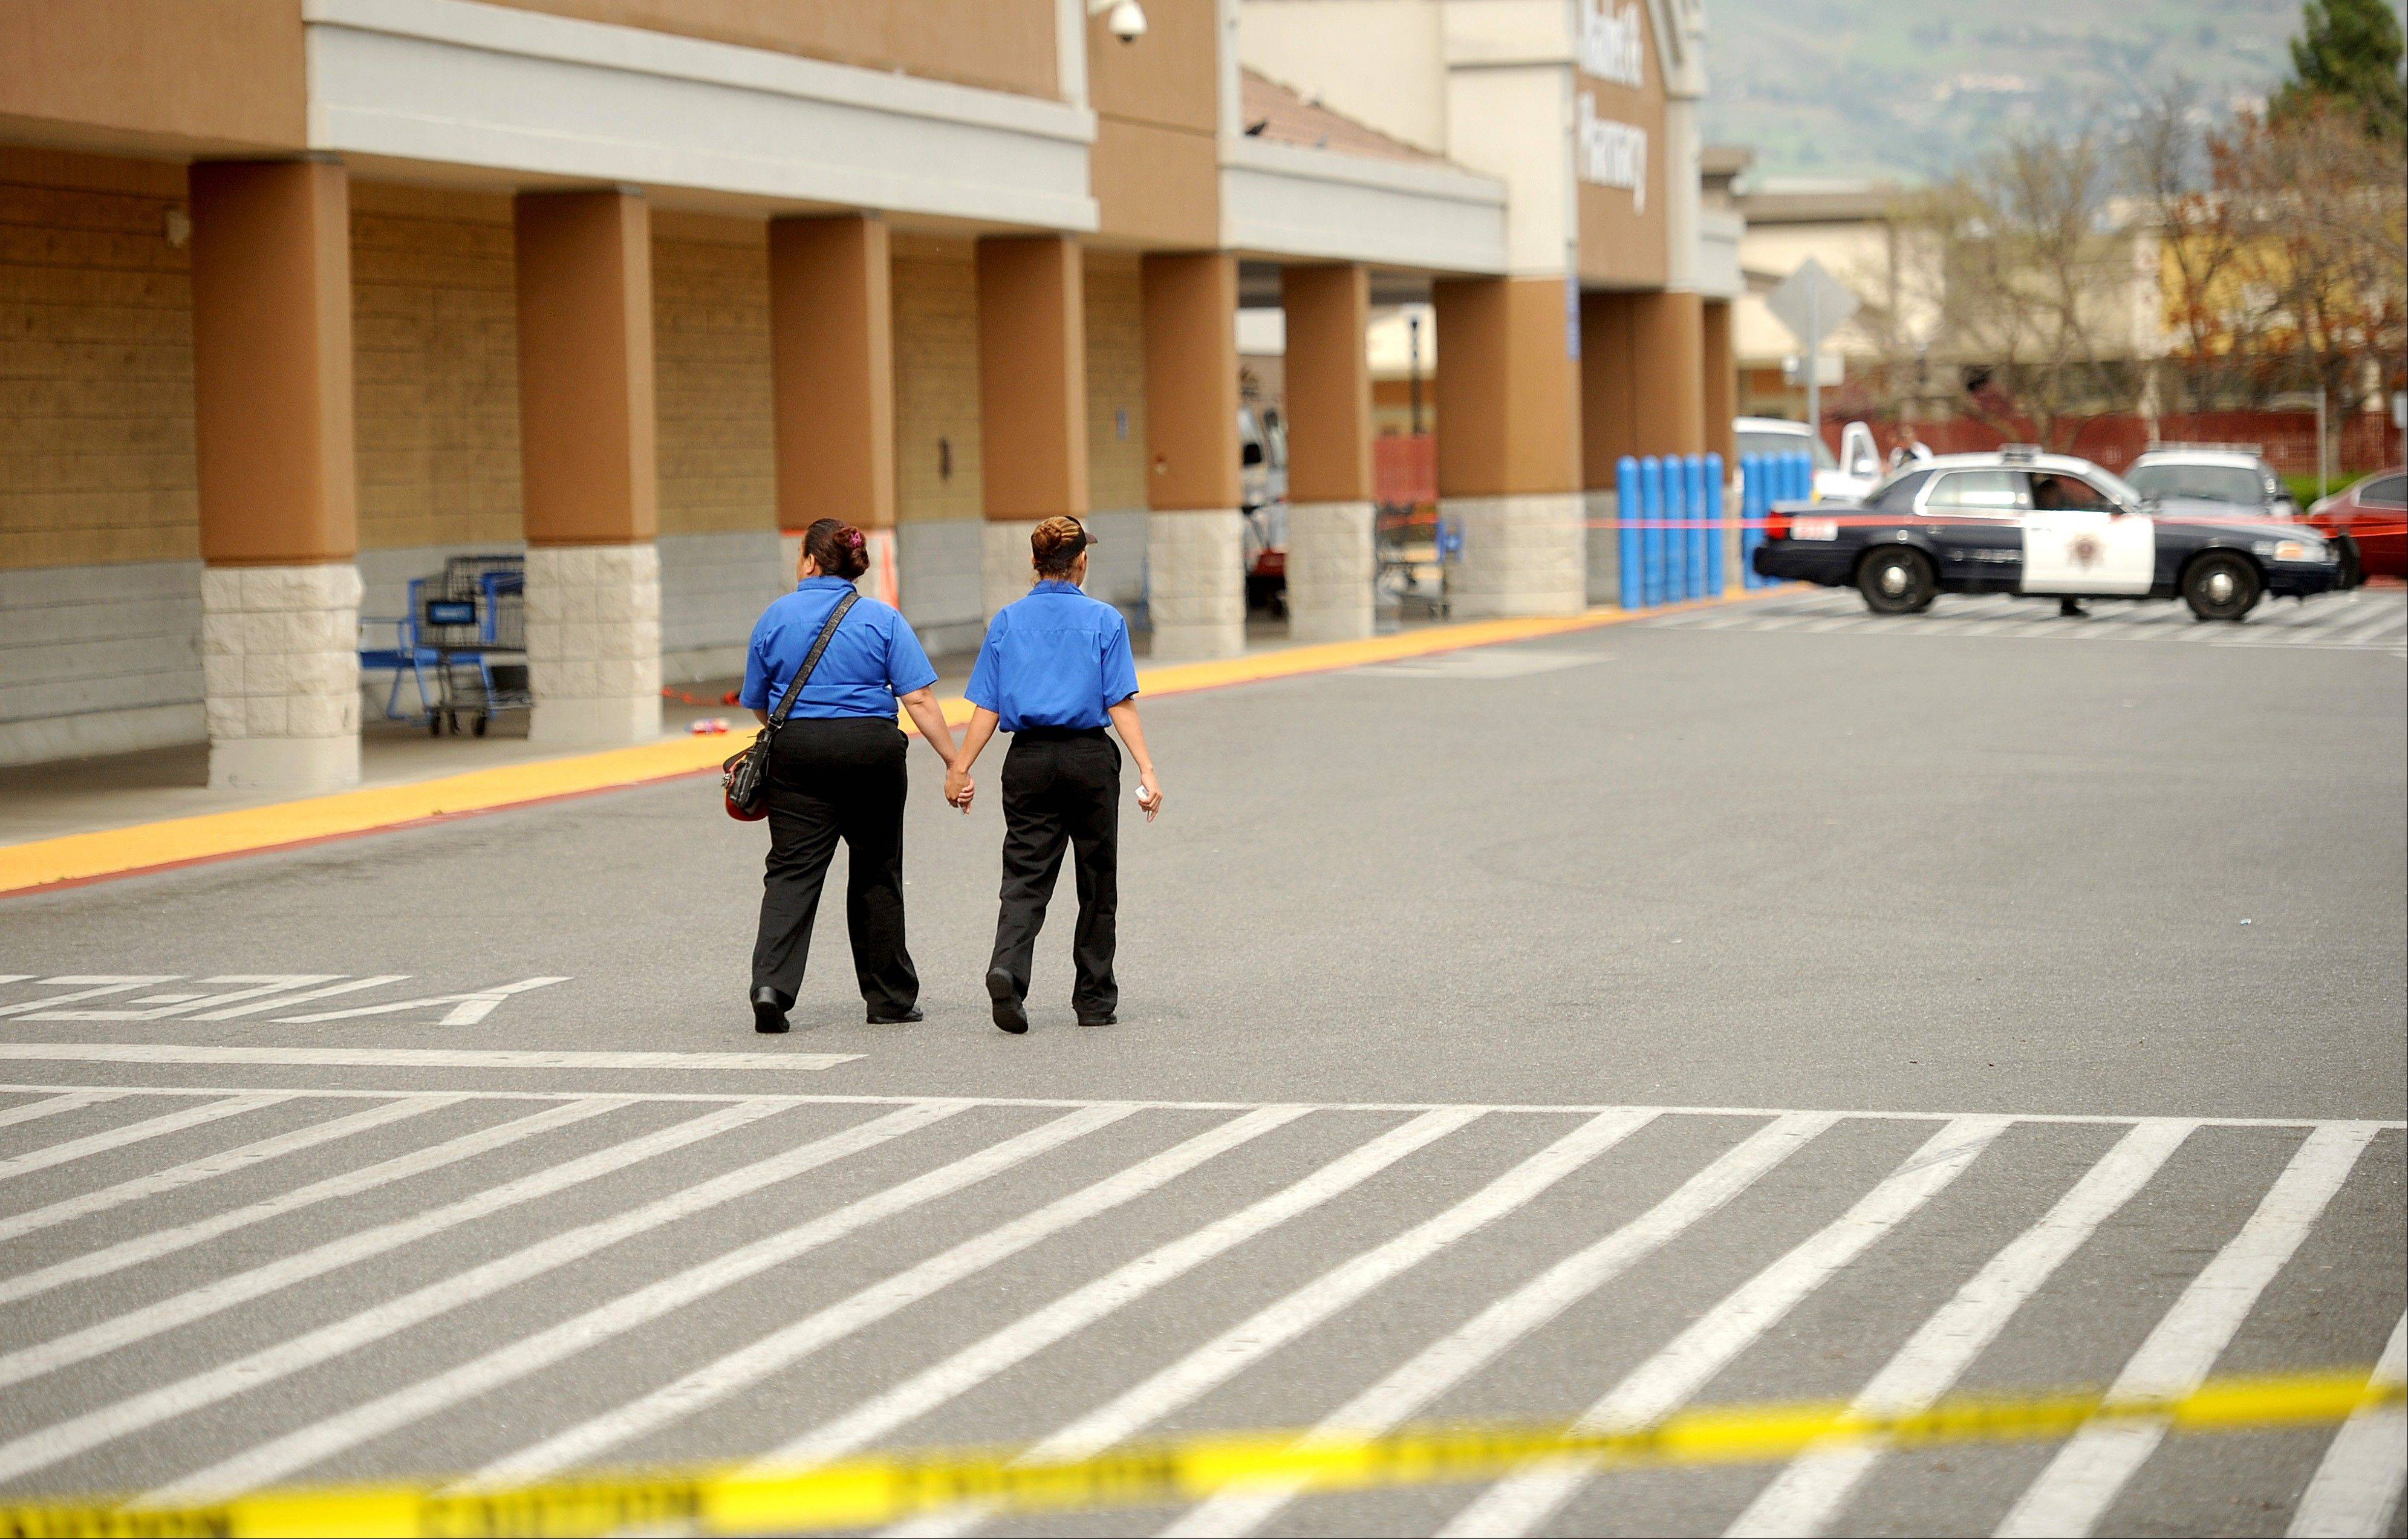 Unidentified women leave a San Jose, Calif., Wal-Mart after a motorist drove through a store entrance and began assaulting shoppers on Sunday. Four people suffered injuries during the attack, according to a police spokesman.